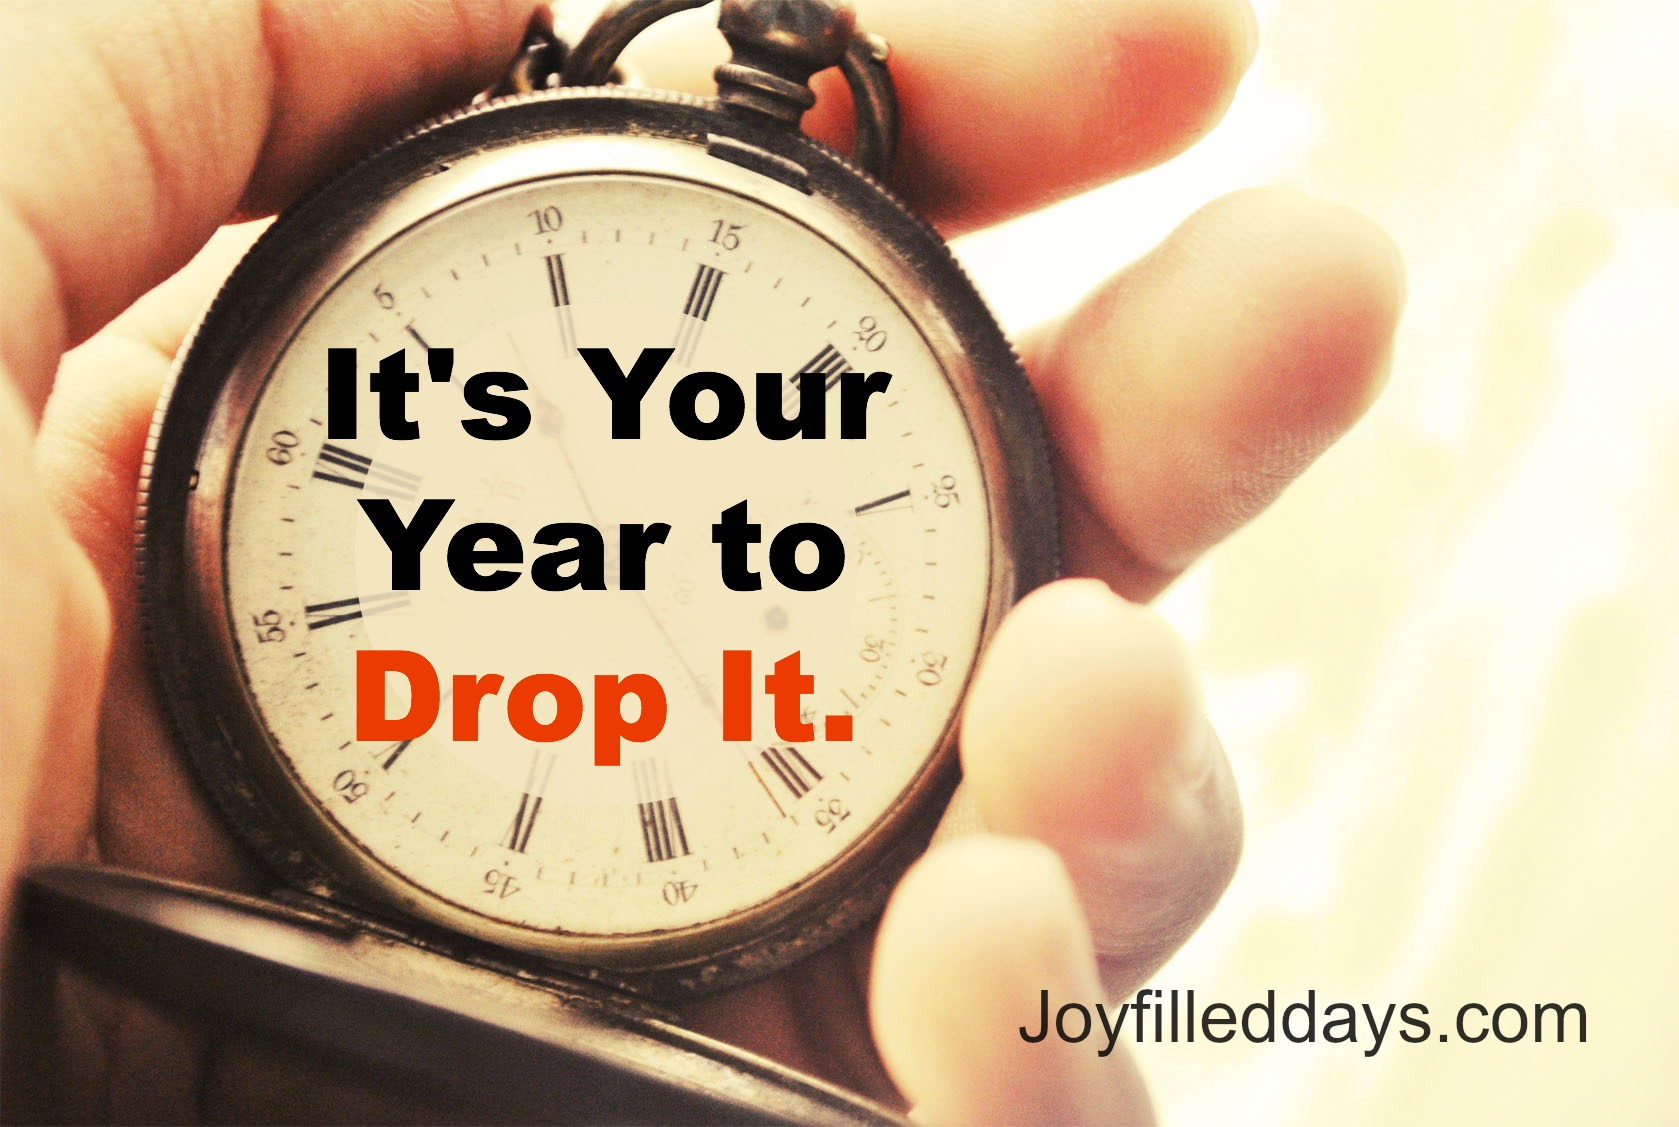 It's your year to drop it